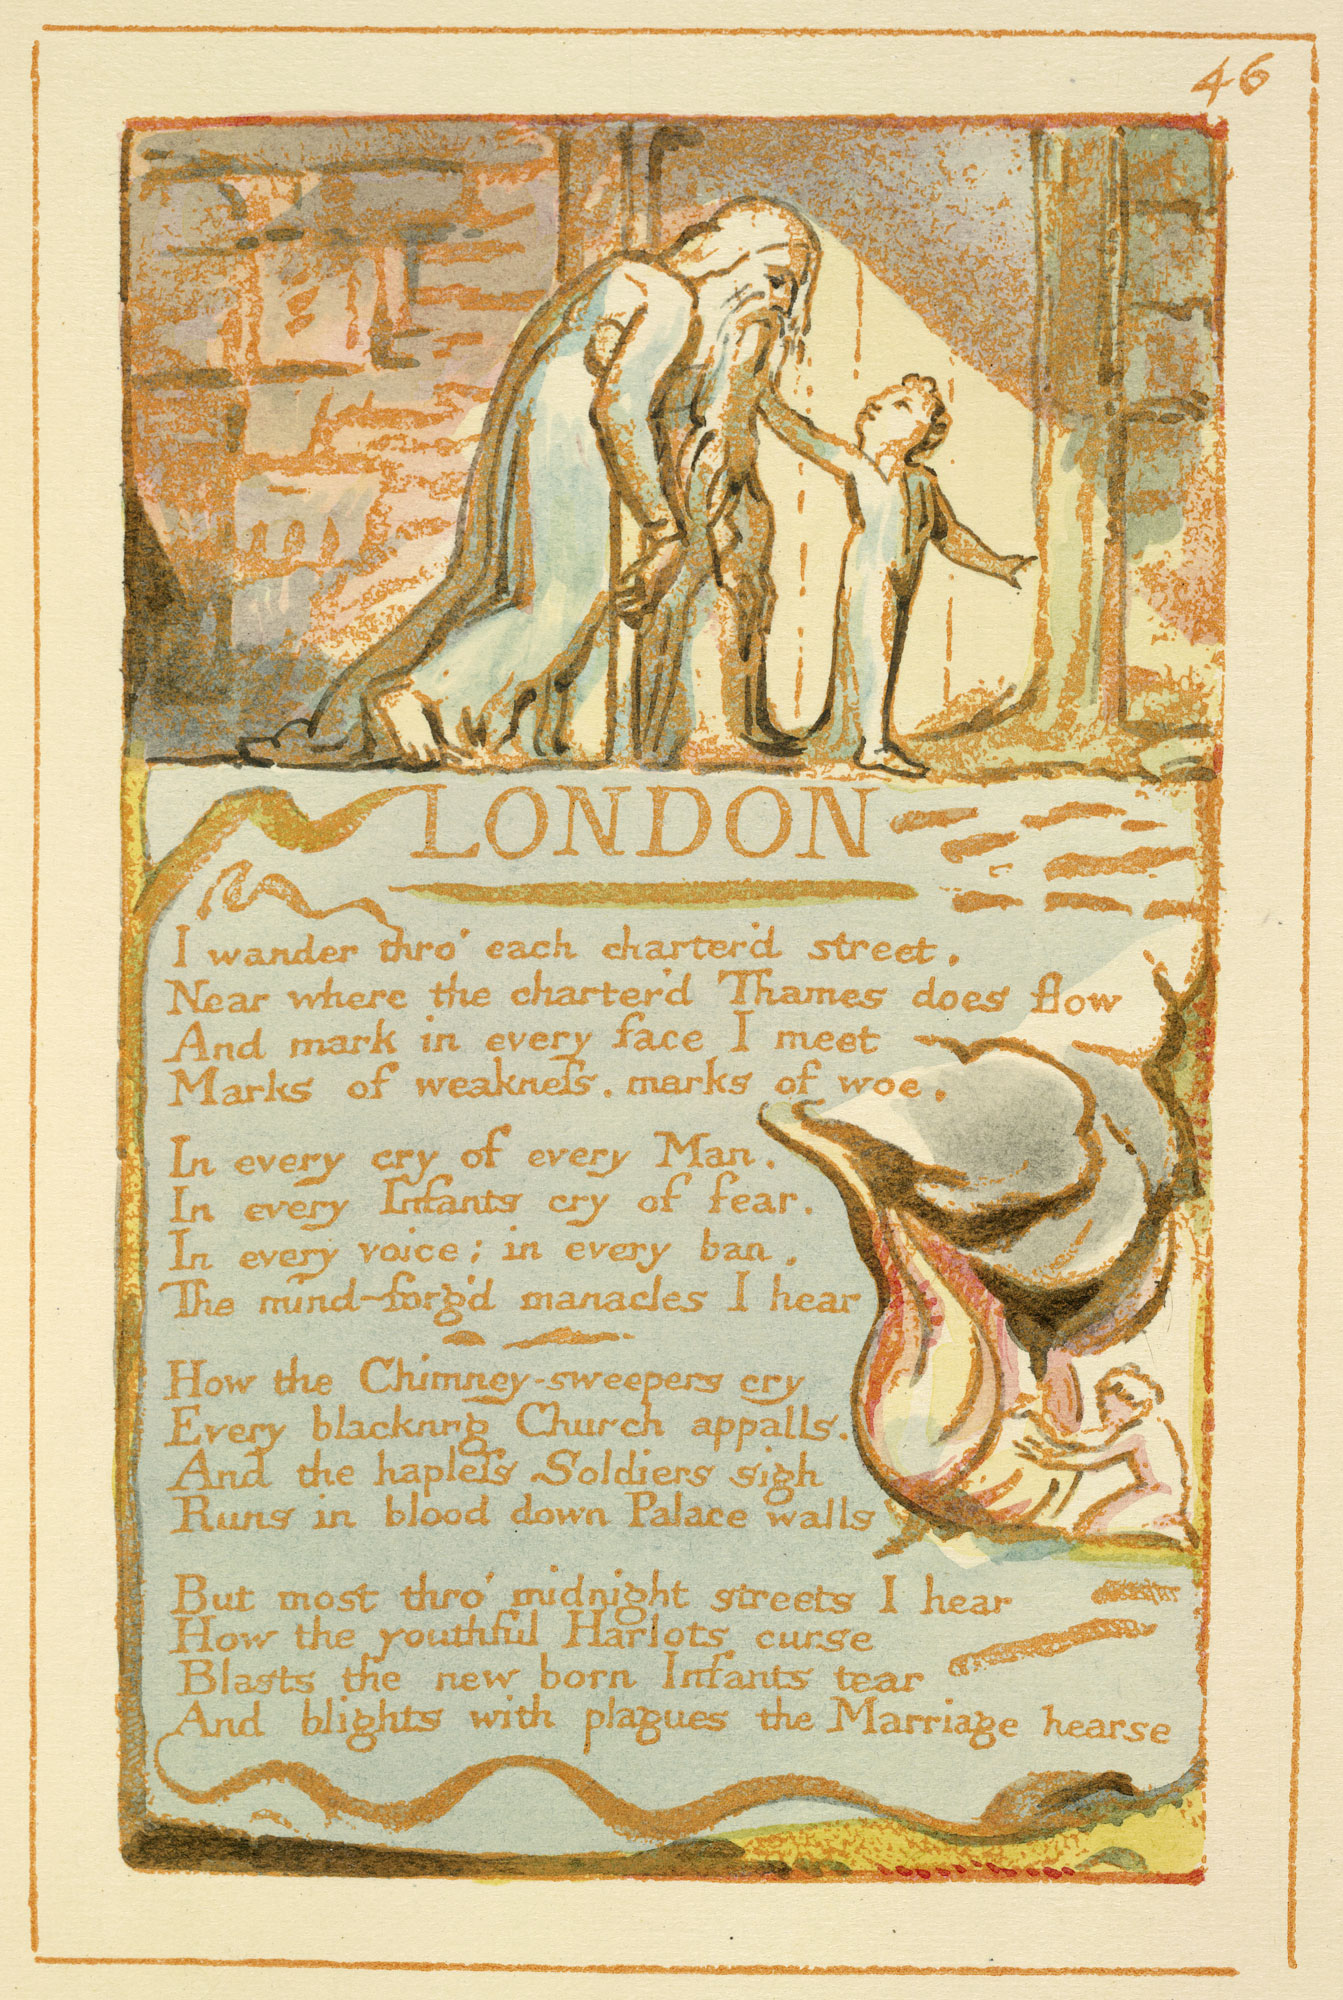 William Blake's Songs of Innocence and Experience [page: 46]